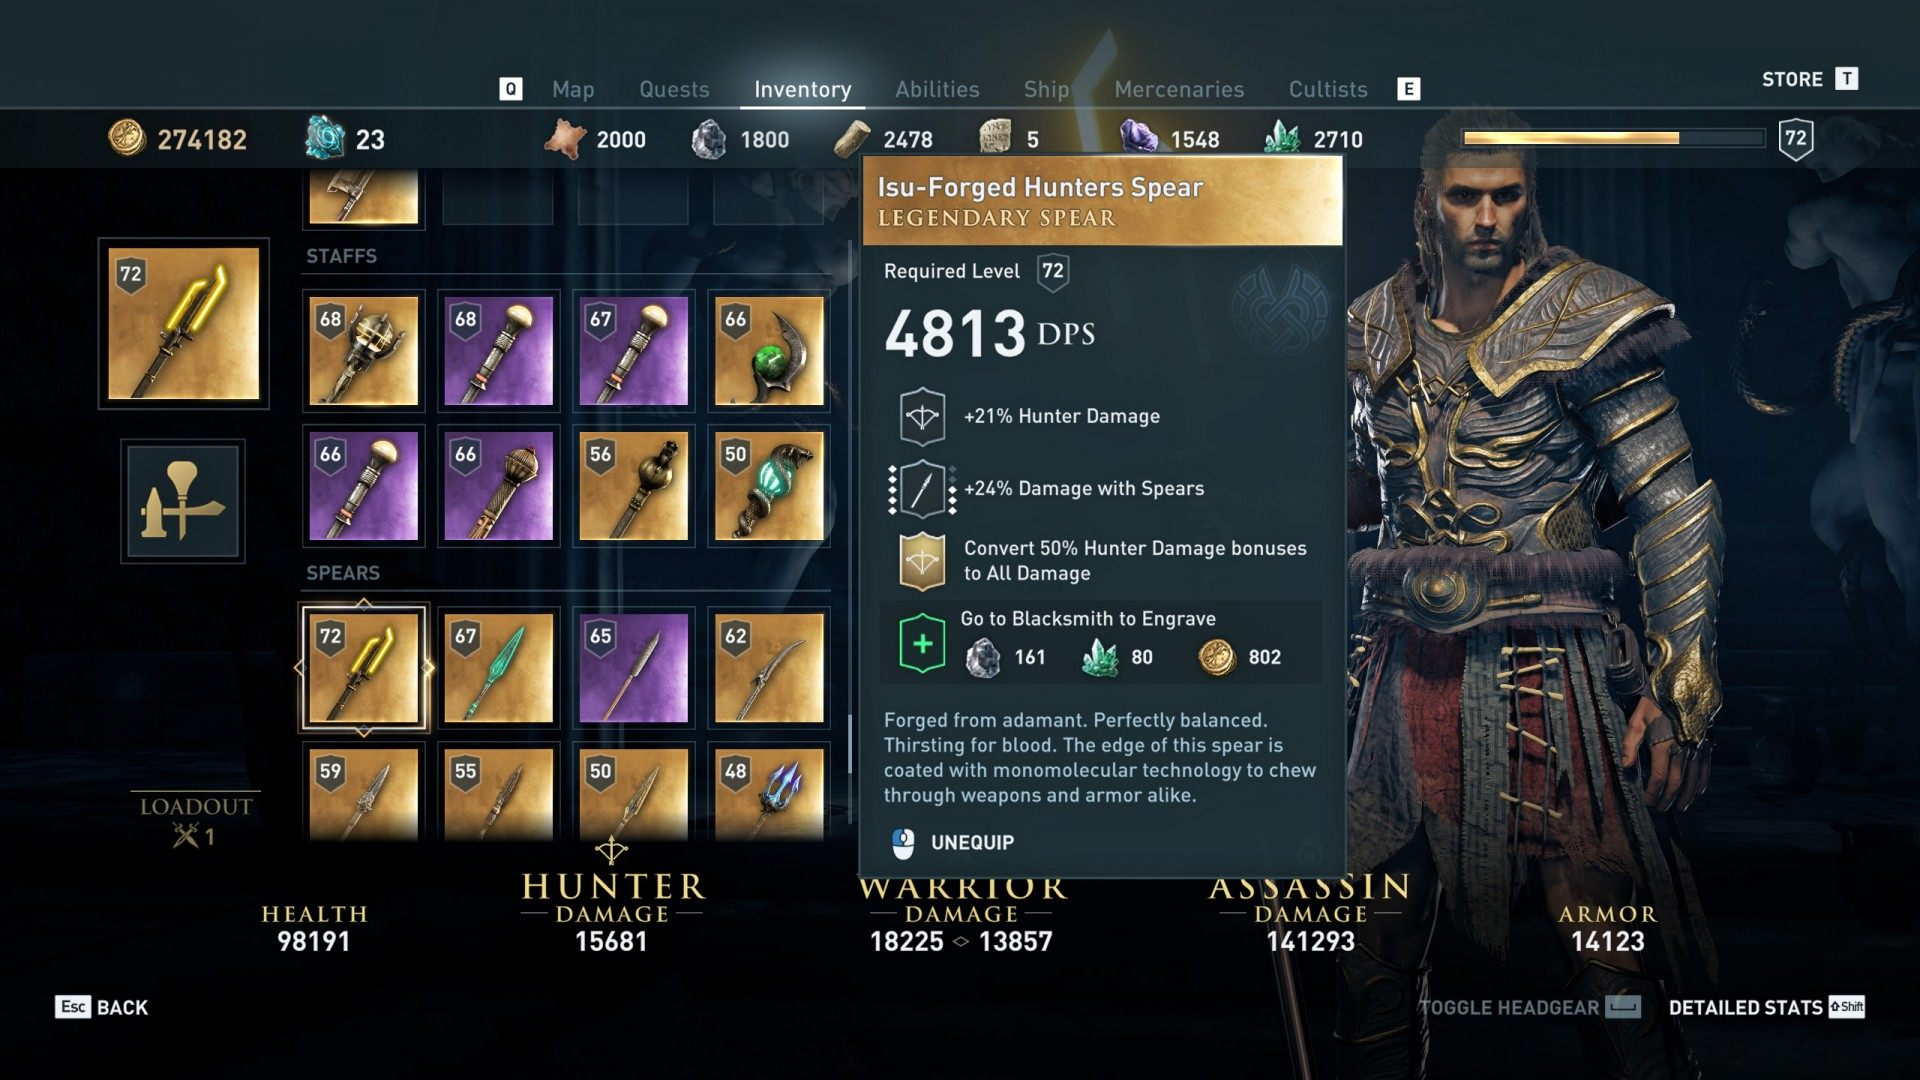 Fire Amid the Water, Assassin's Creed Odyssey Quest